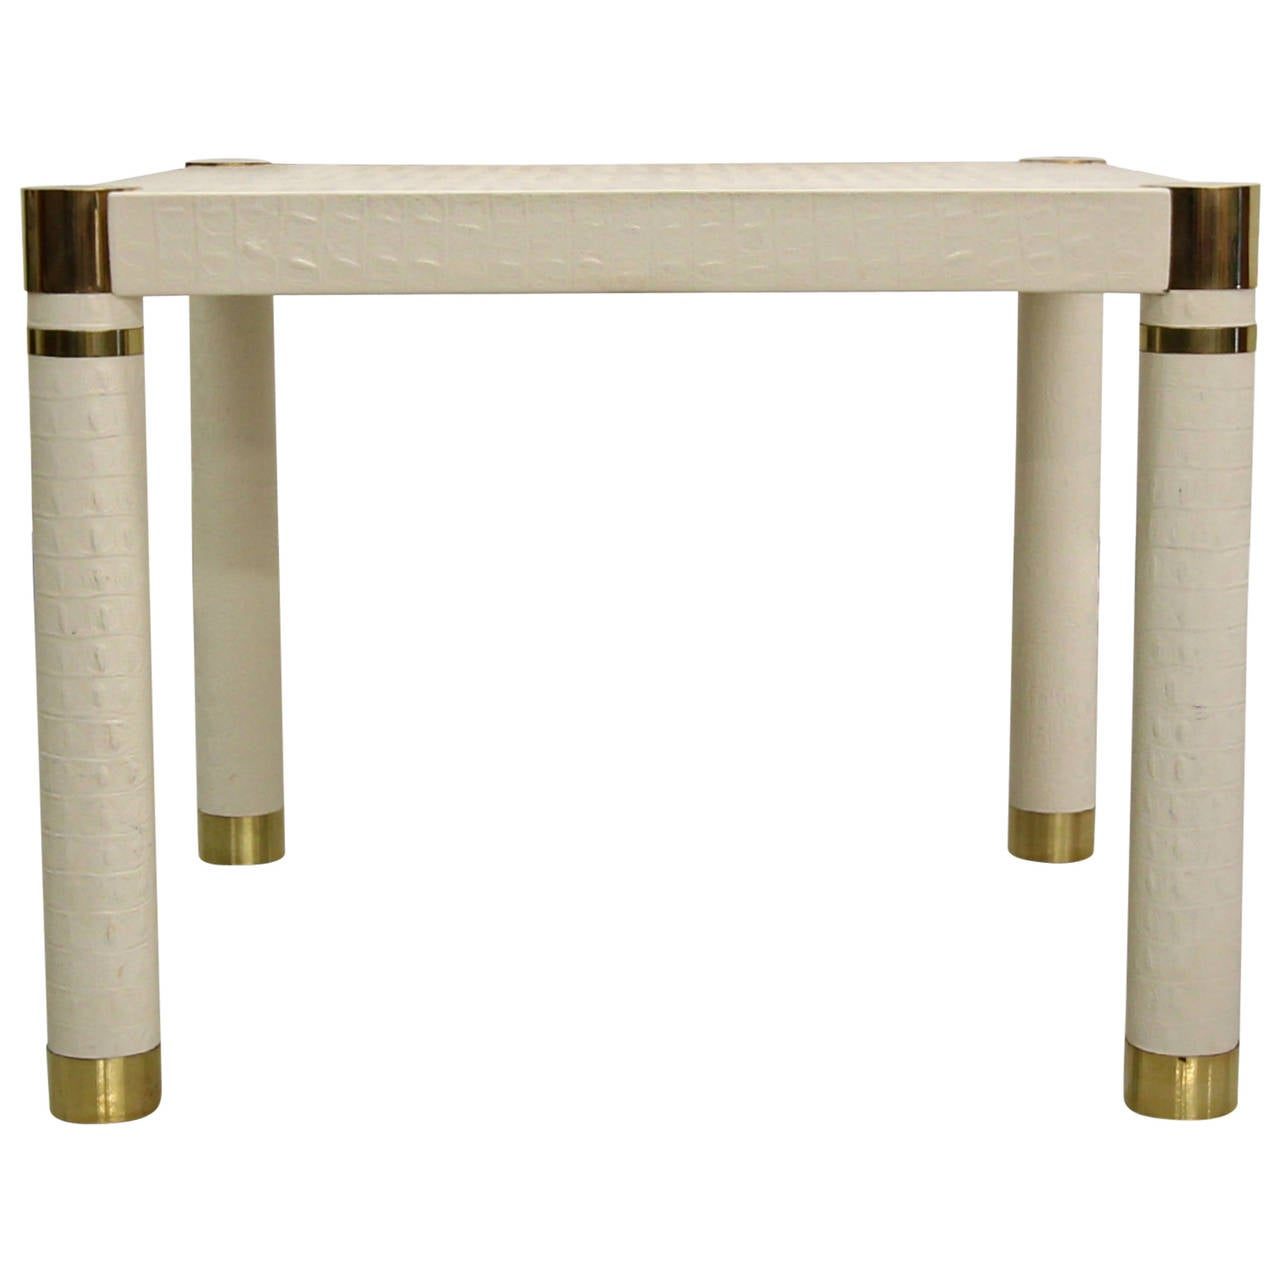 Crocodile embossed leather small square dining card table for Small square dining table